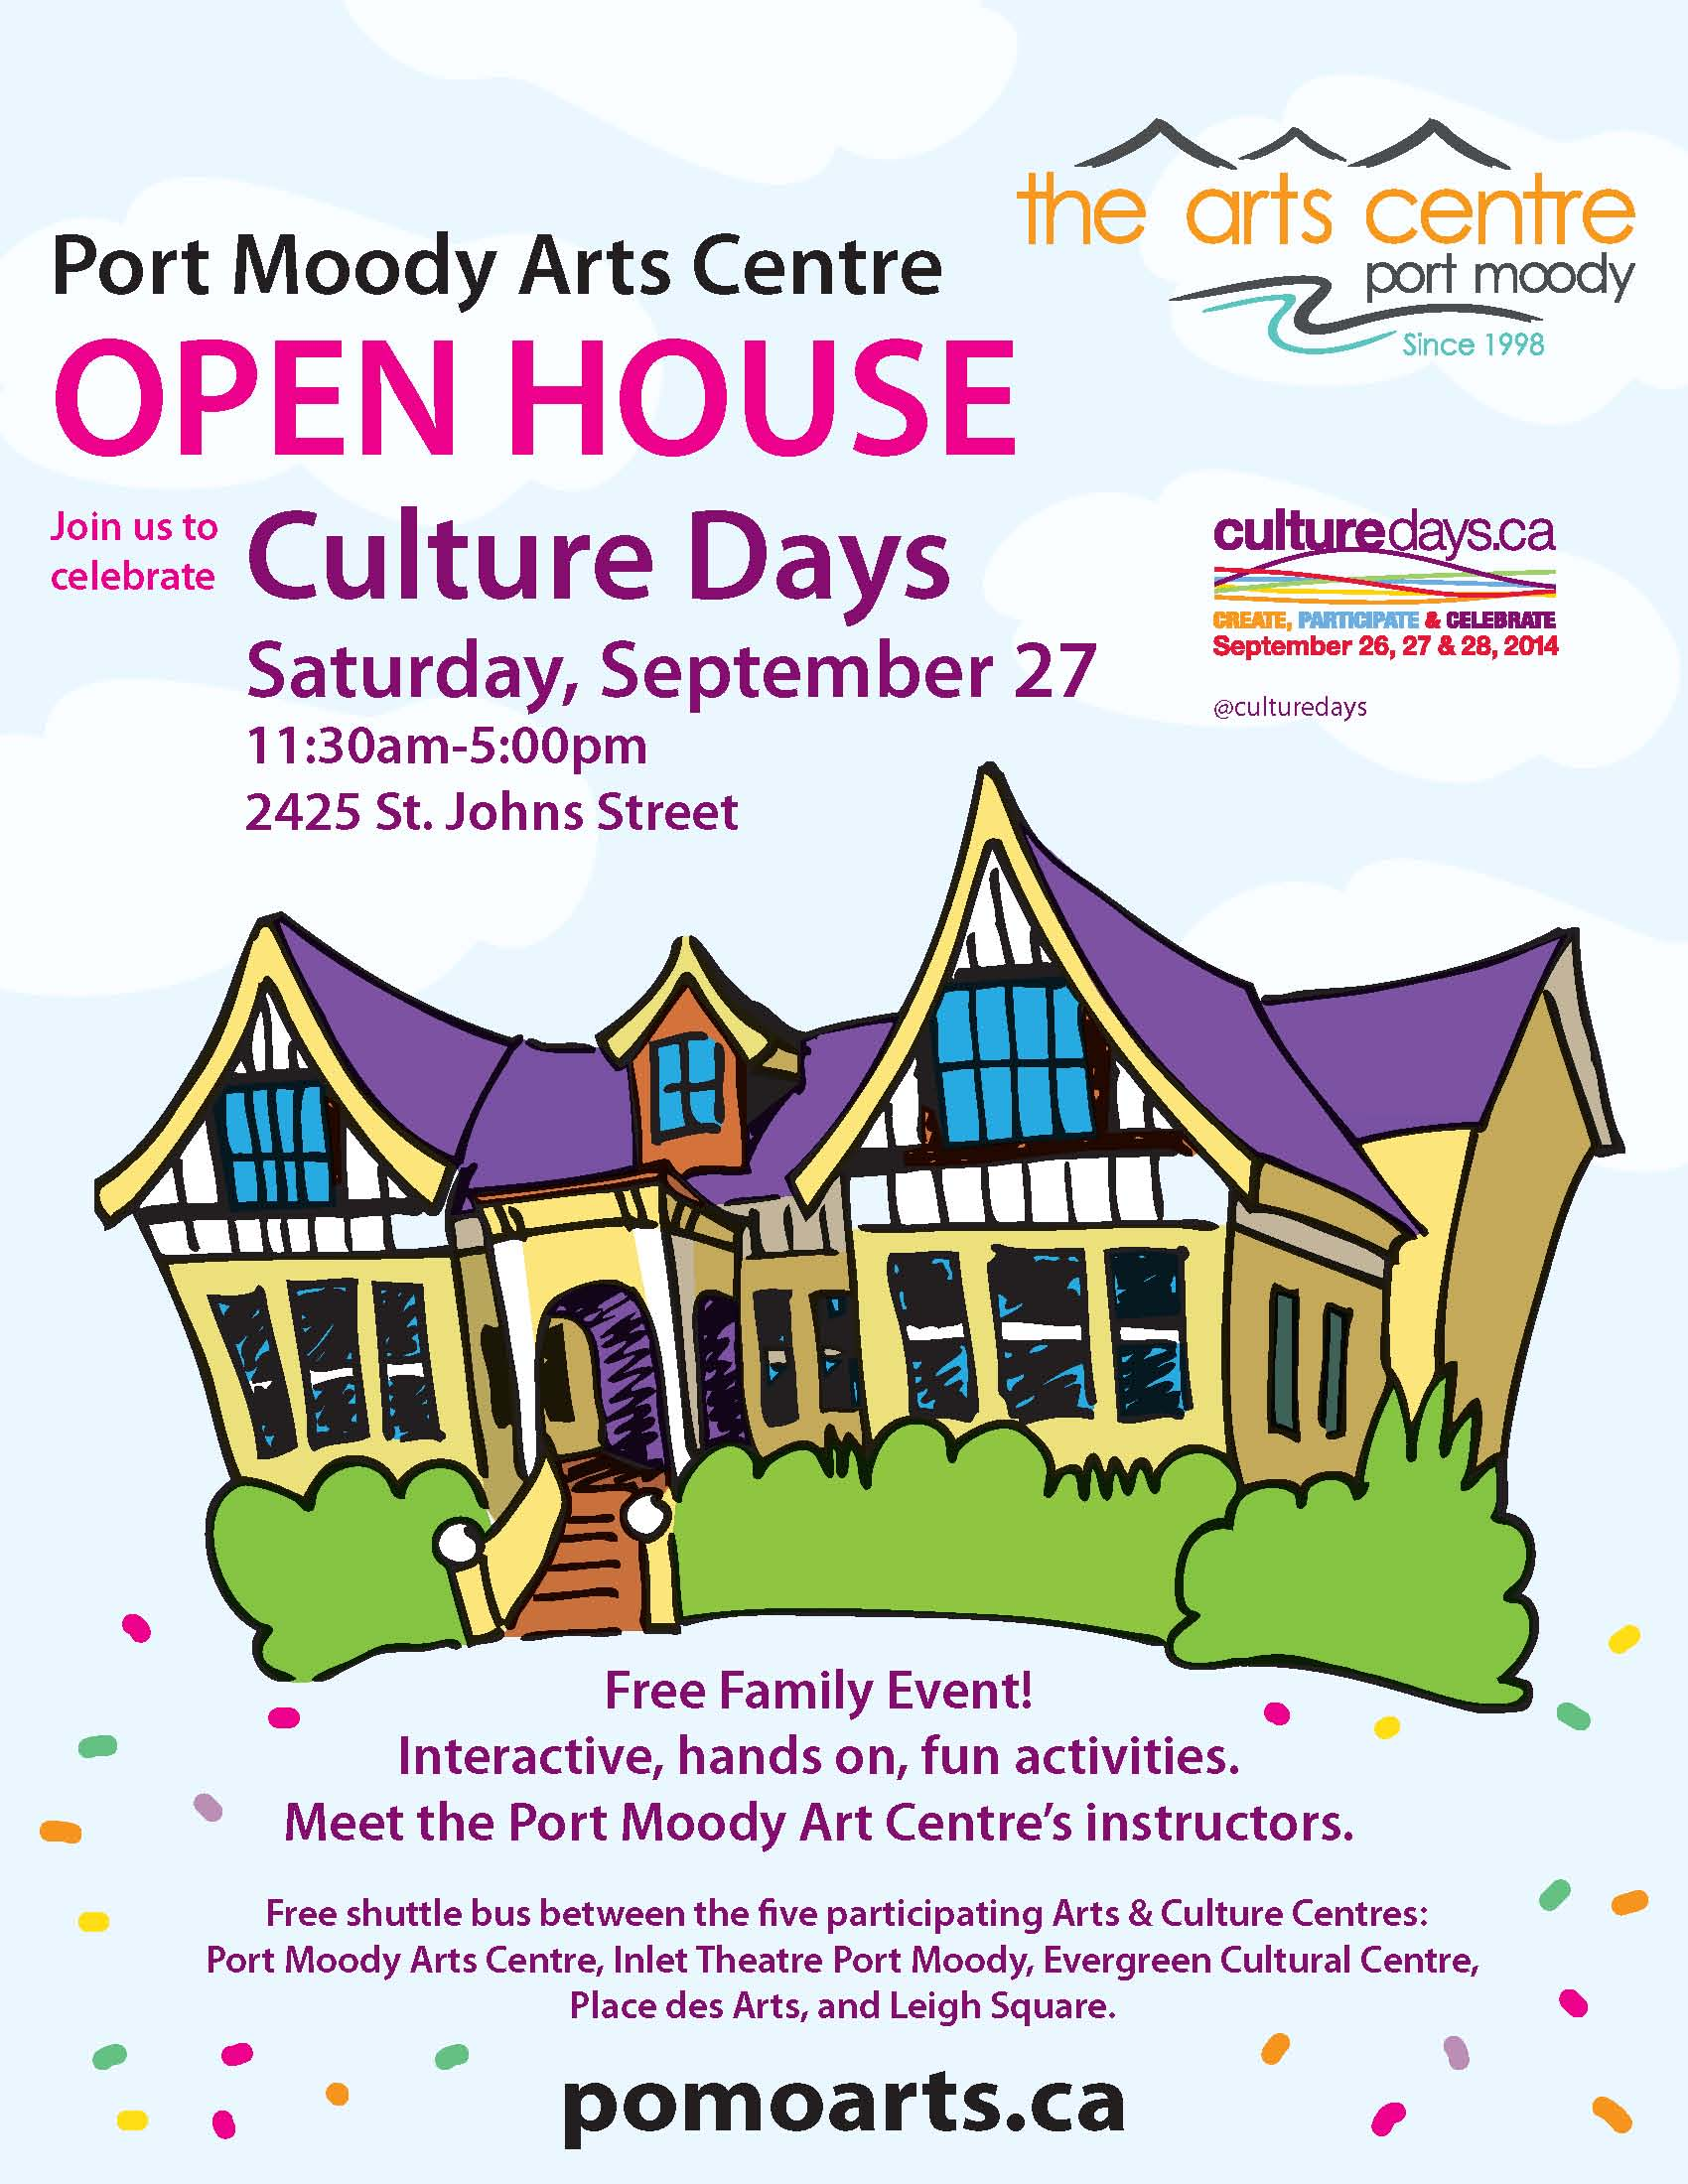 Culture Days with the Port Moody Arts Centre on Saturday, September 27